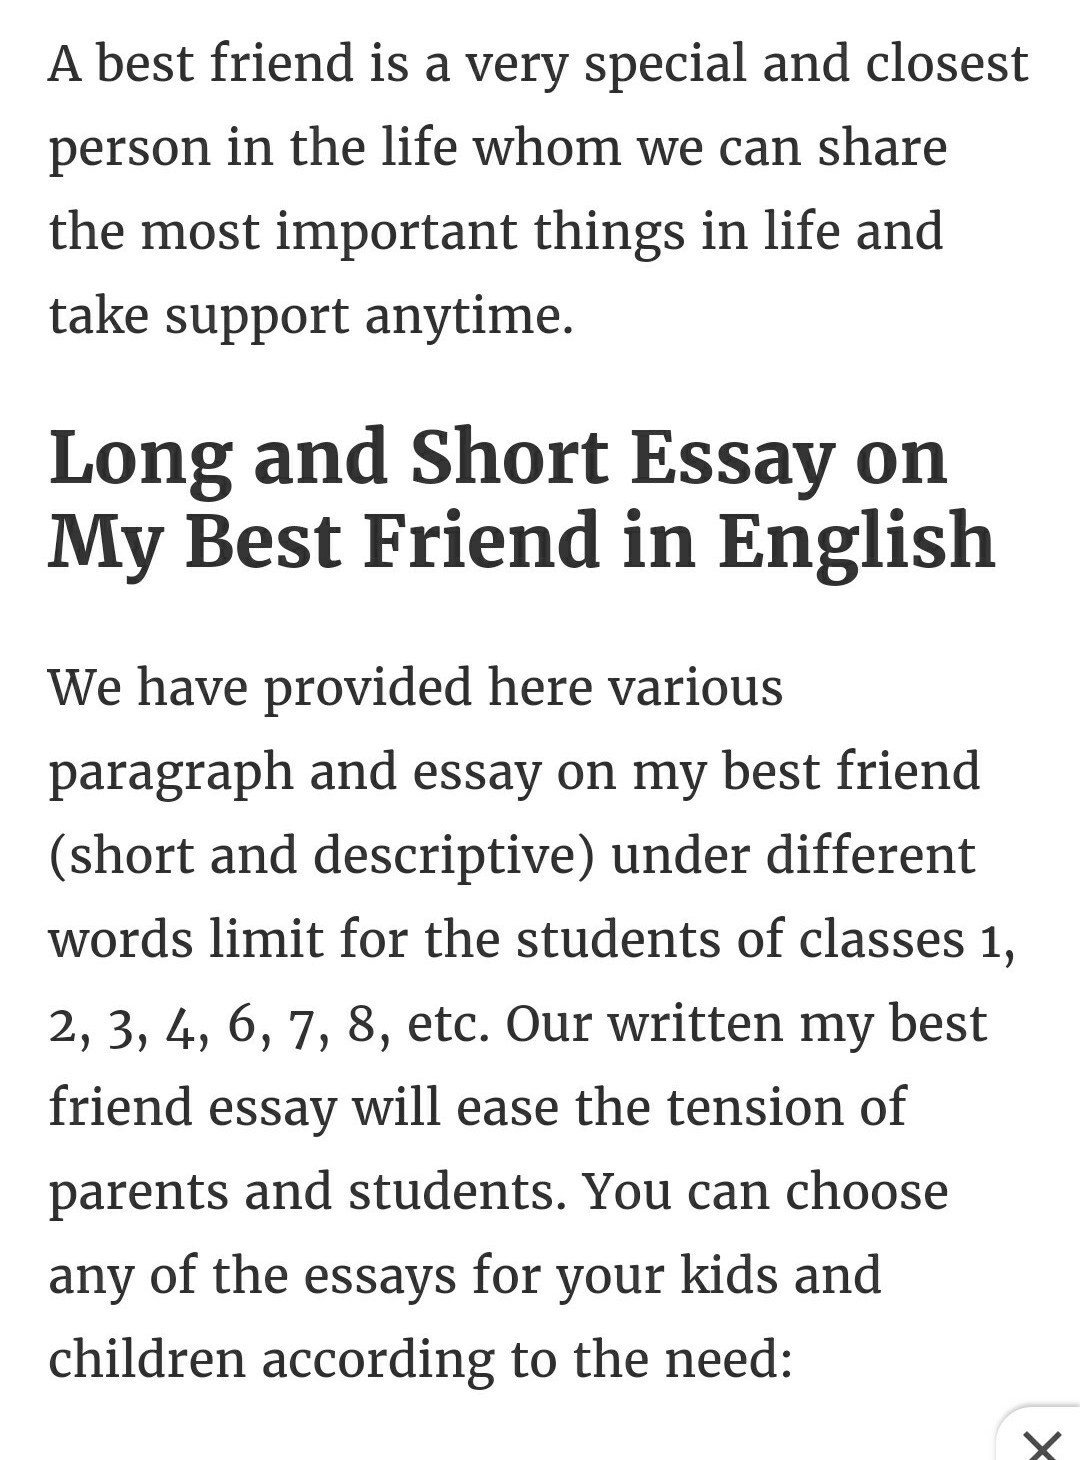 Friendship essay in english